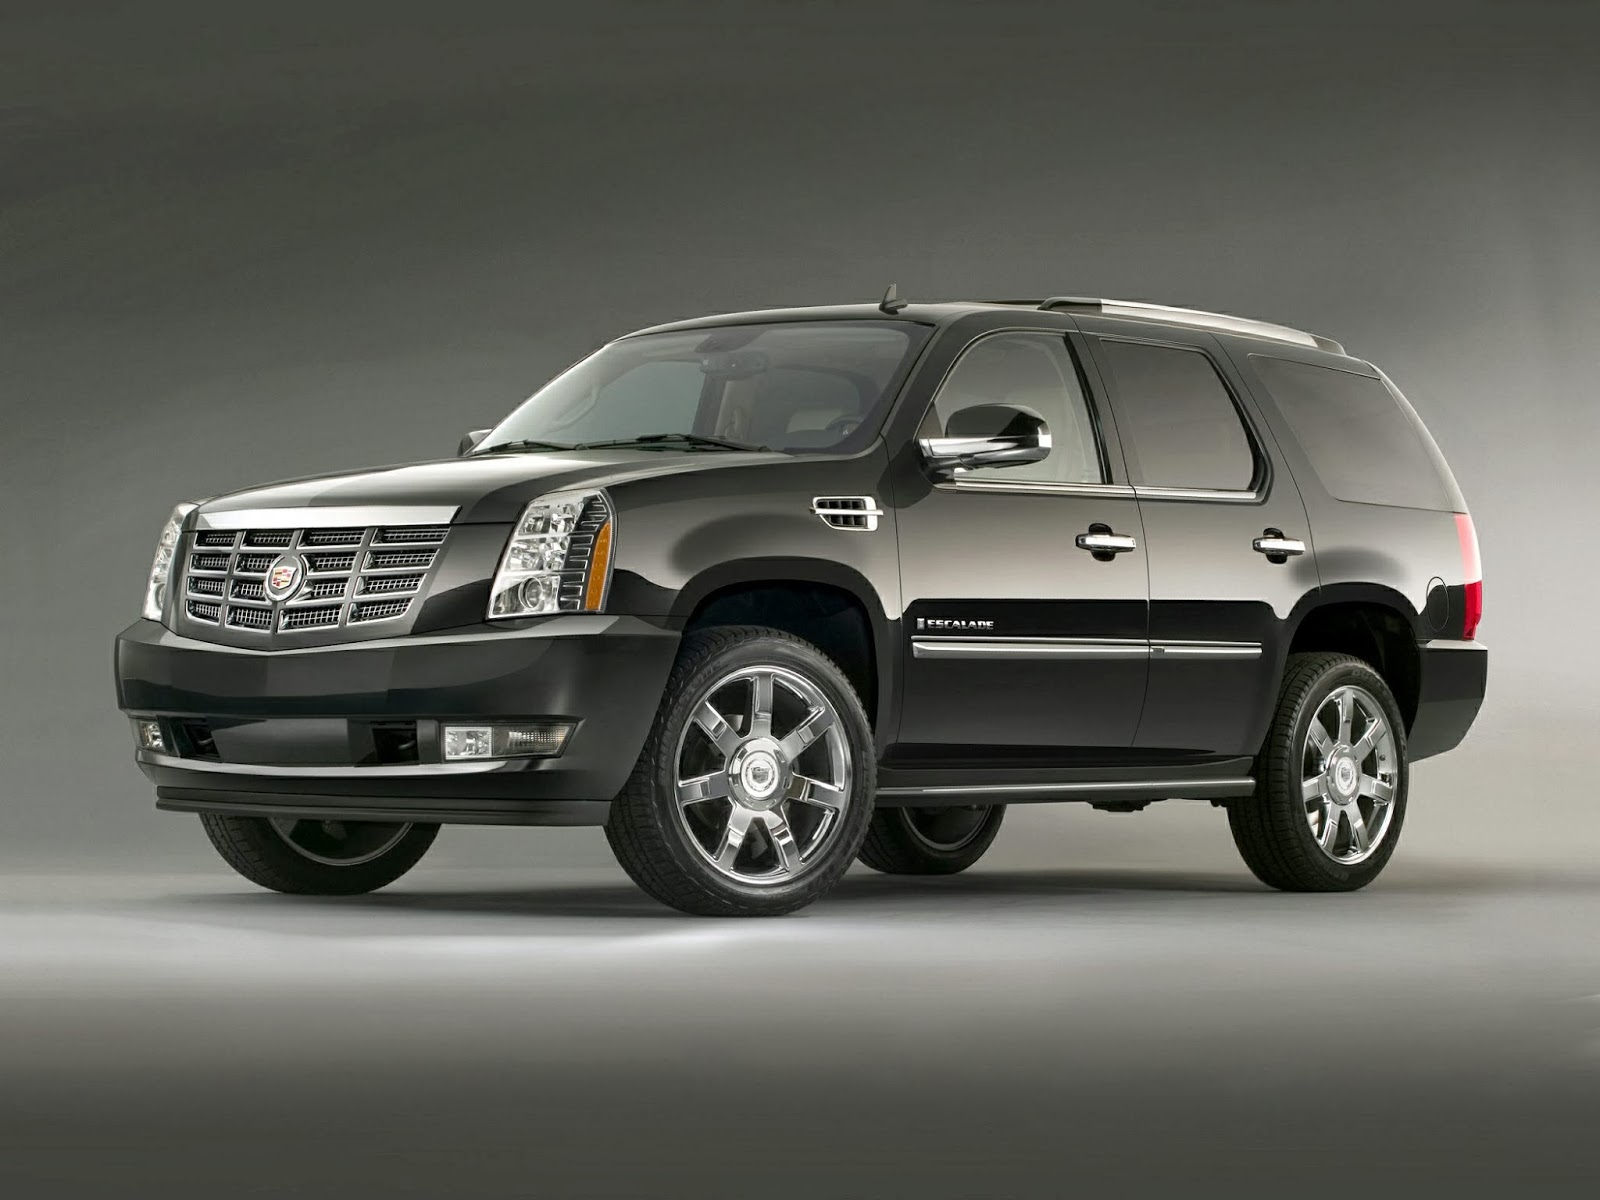 cadillac photo and family esv suv best ext escalade exterior suvs specification specificatione price exhaust bestsuvcrossover